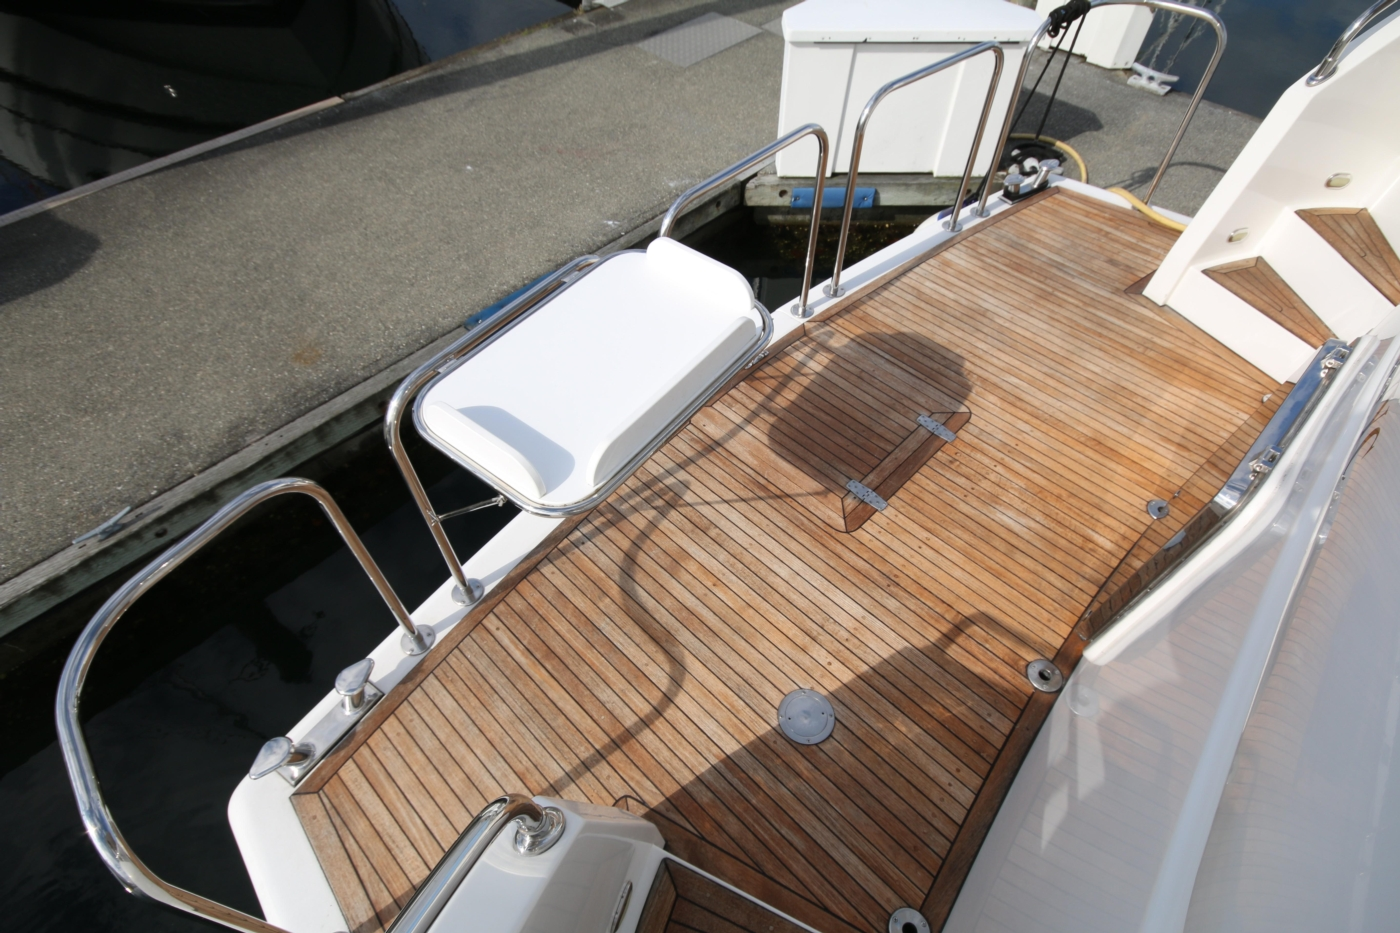 2002 Monte Fino 68, Swim Grid with Table Deployed